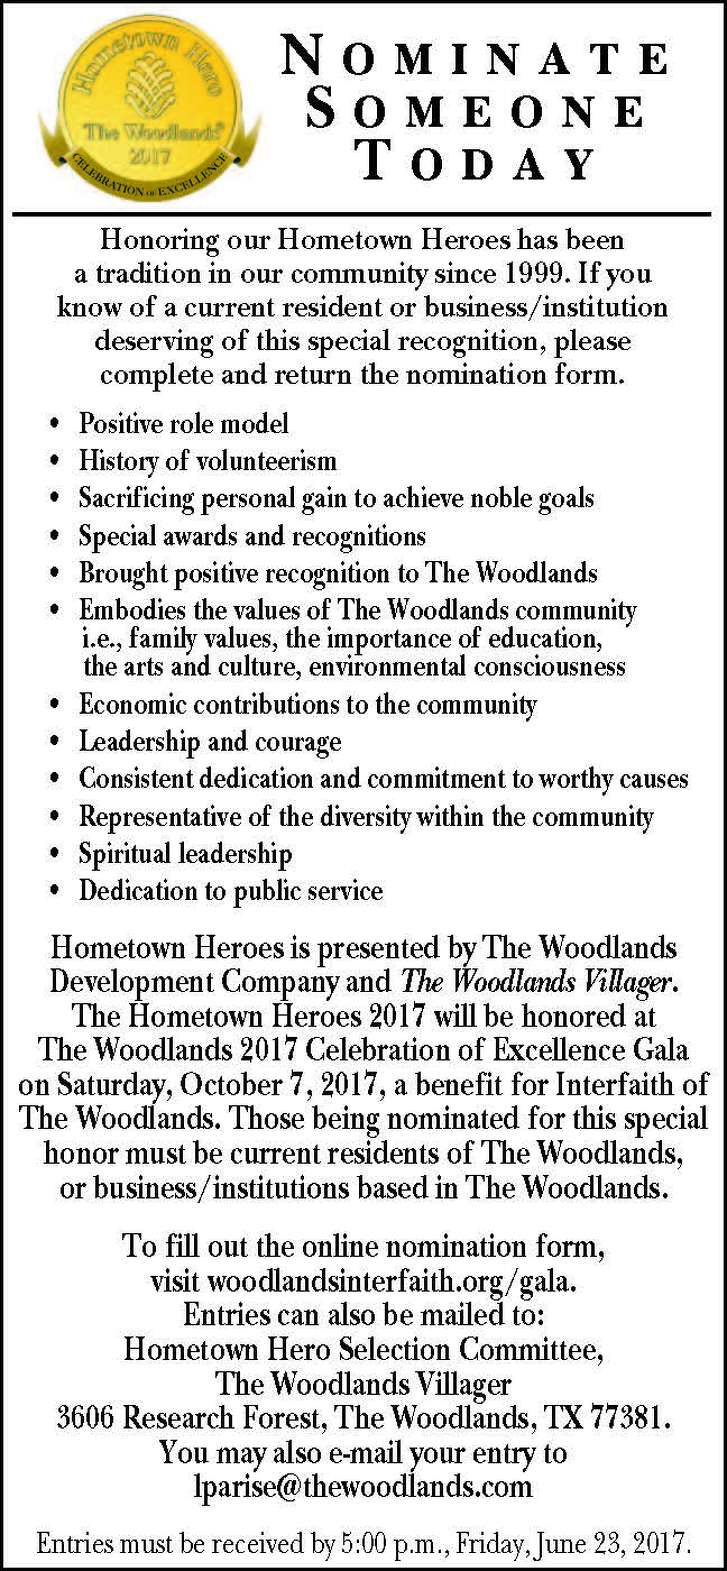 The 2017 Hometown Heroes will be honored at The Woodlands 2017 Celebration of Excellence Gala on Saturday, October 7, benefiting Interfaith of The Woodlands. Hometown Heroes nominees are current residents or businesses/institutions in The Woodlands who exemplify leadership, courage and dedication.